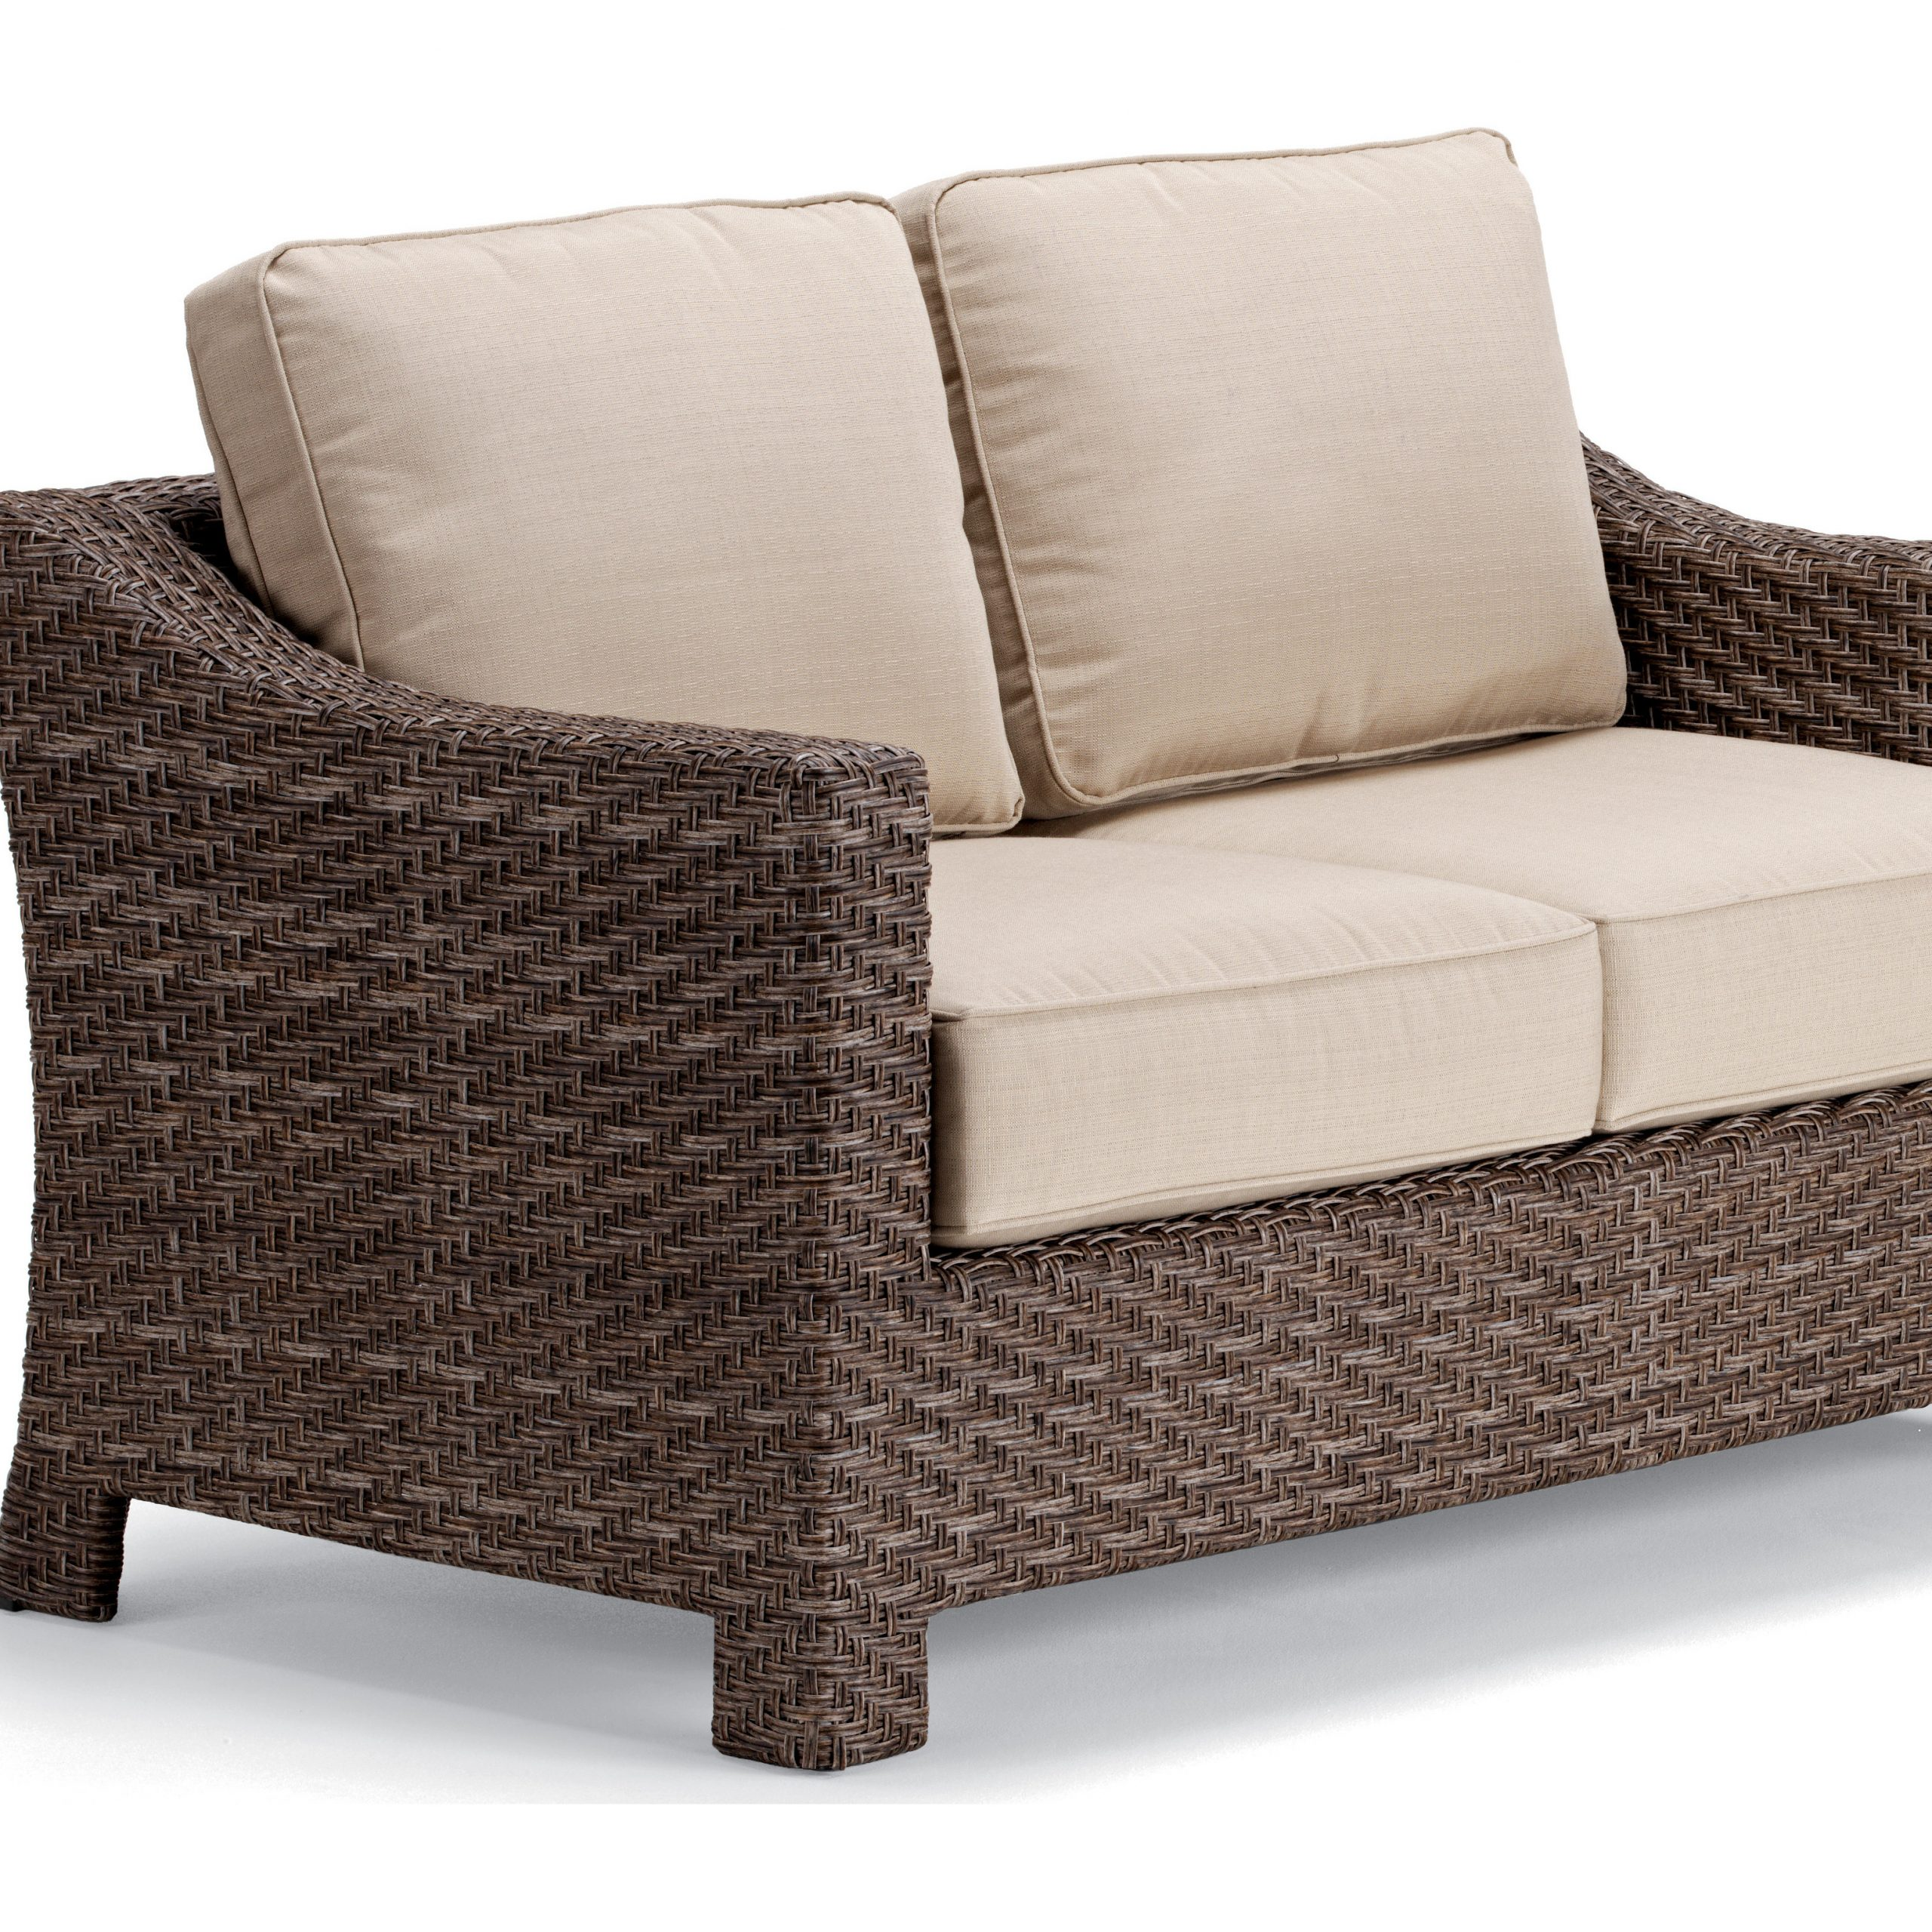 Oceanside Outdoor Wicker Loveseats With Cushions Pertaining To Most Popular Wicker Loveseat Patio Furniture – Telescope Casual Lake (View 10 of 25)